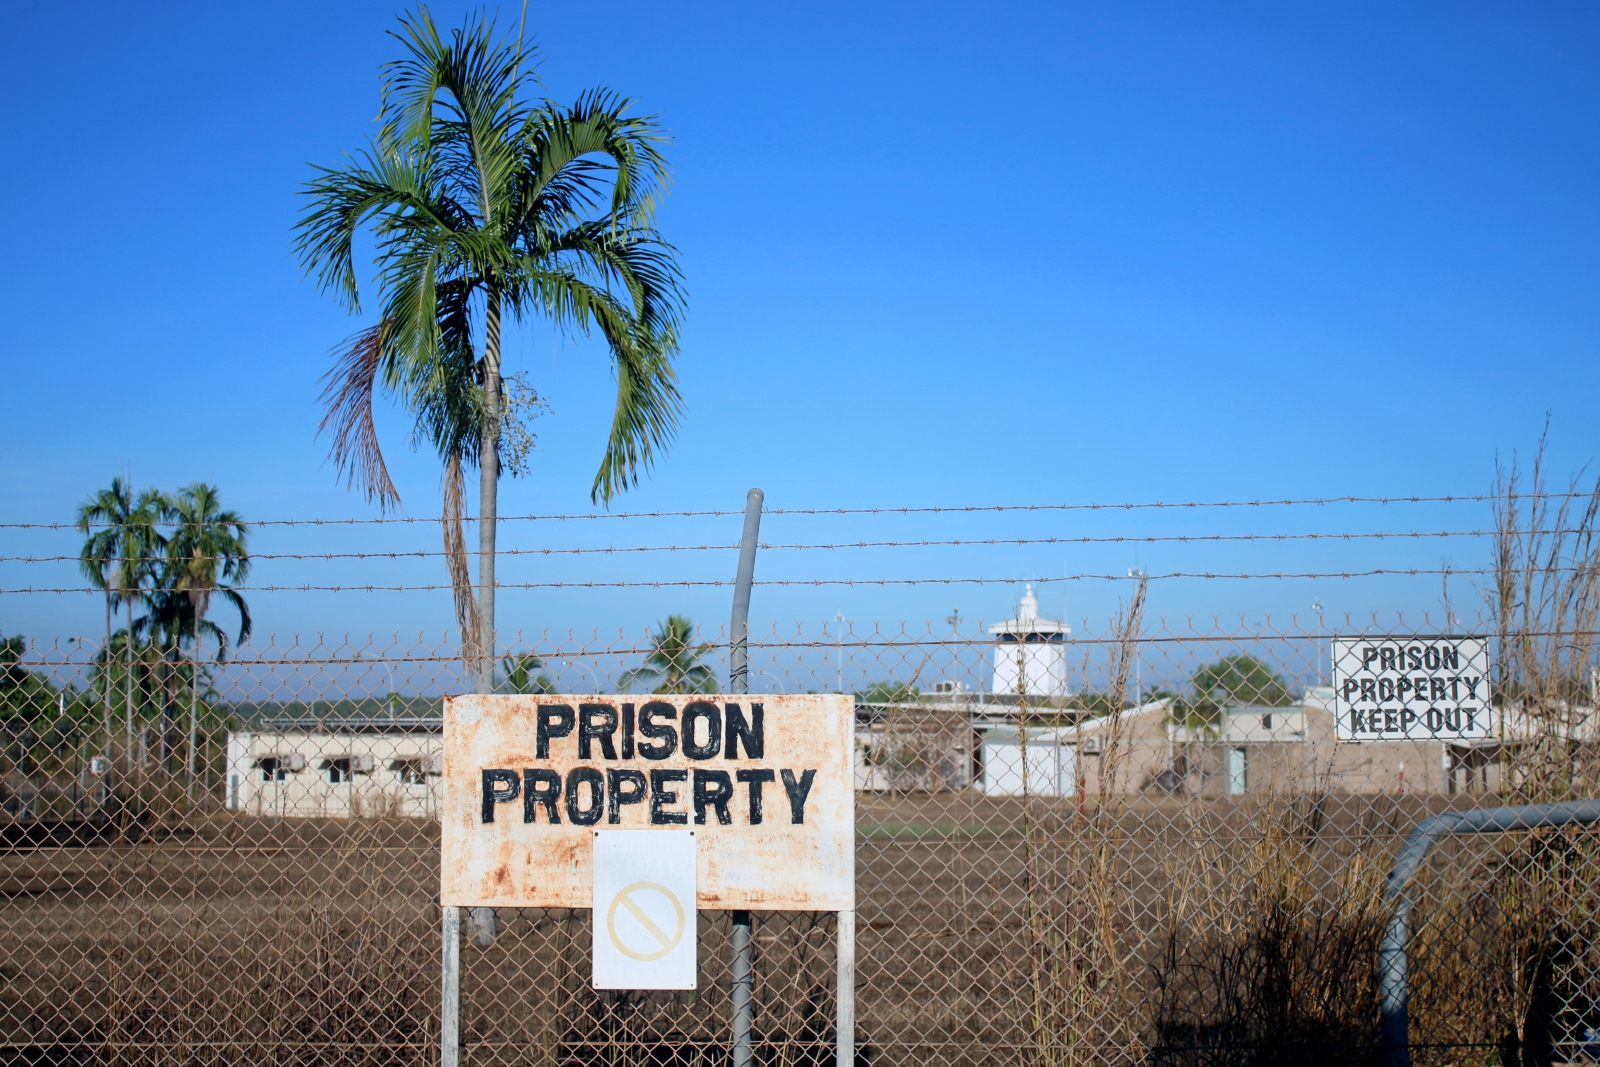 Australia juvenile detention camp